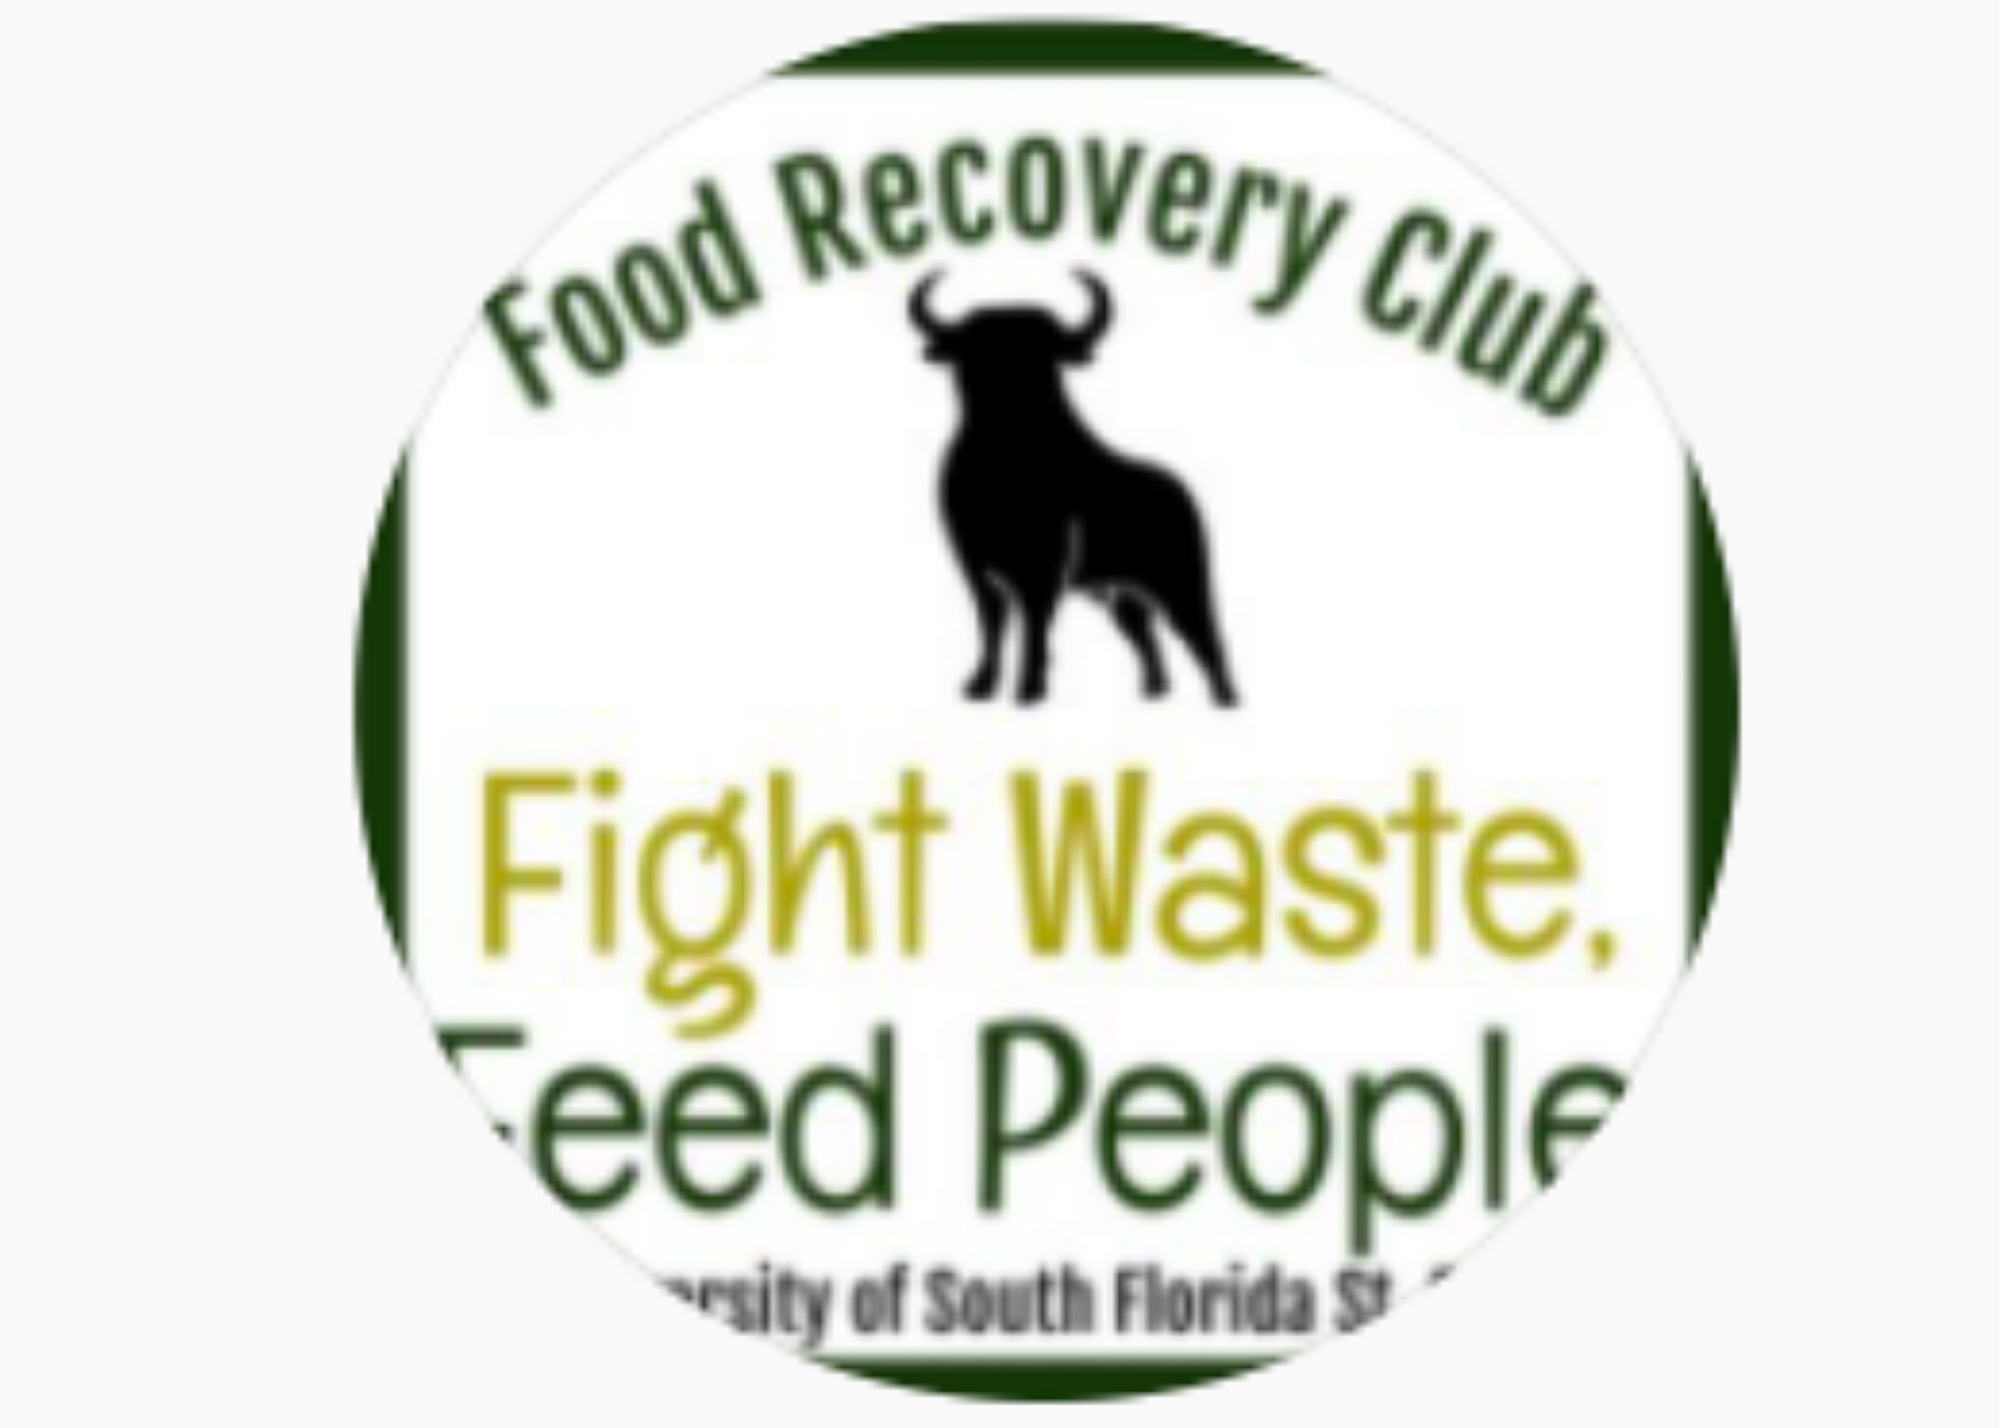 The Food Recovery Club (FRC)